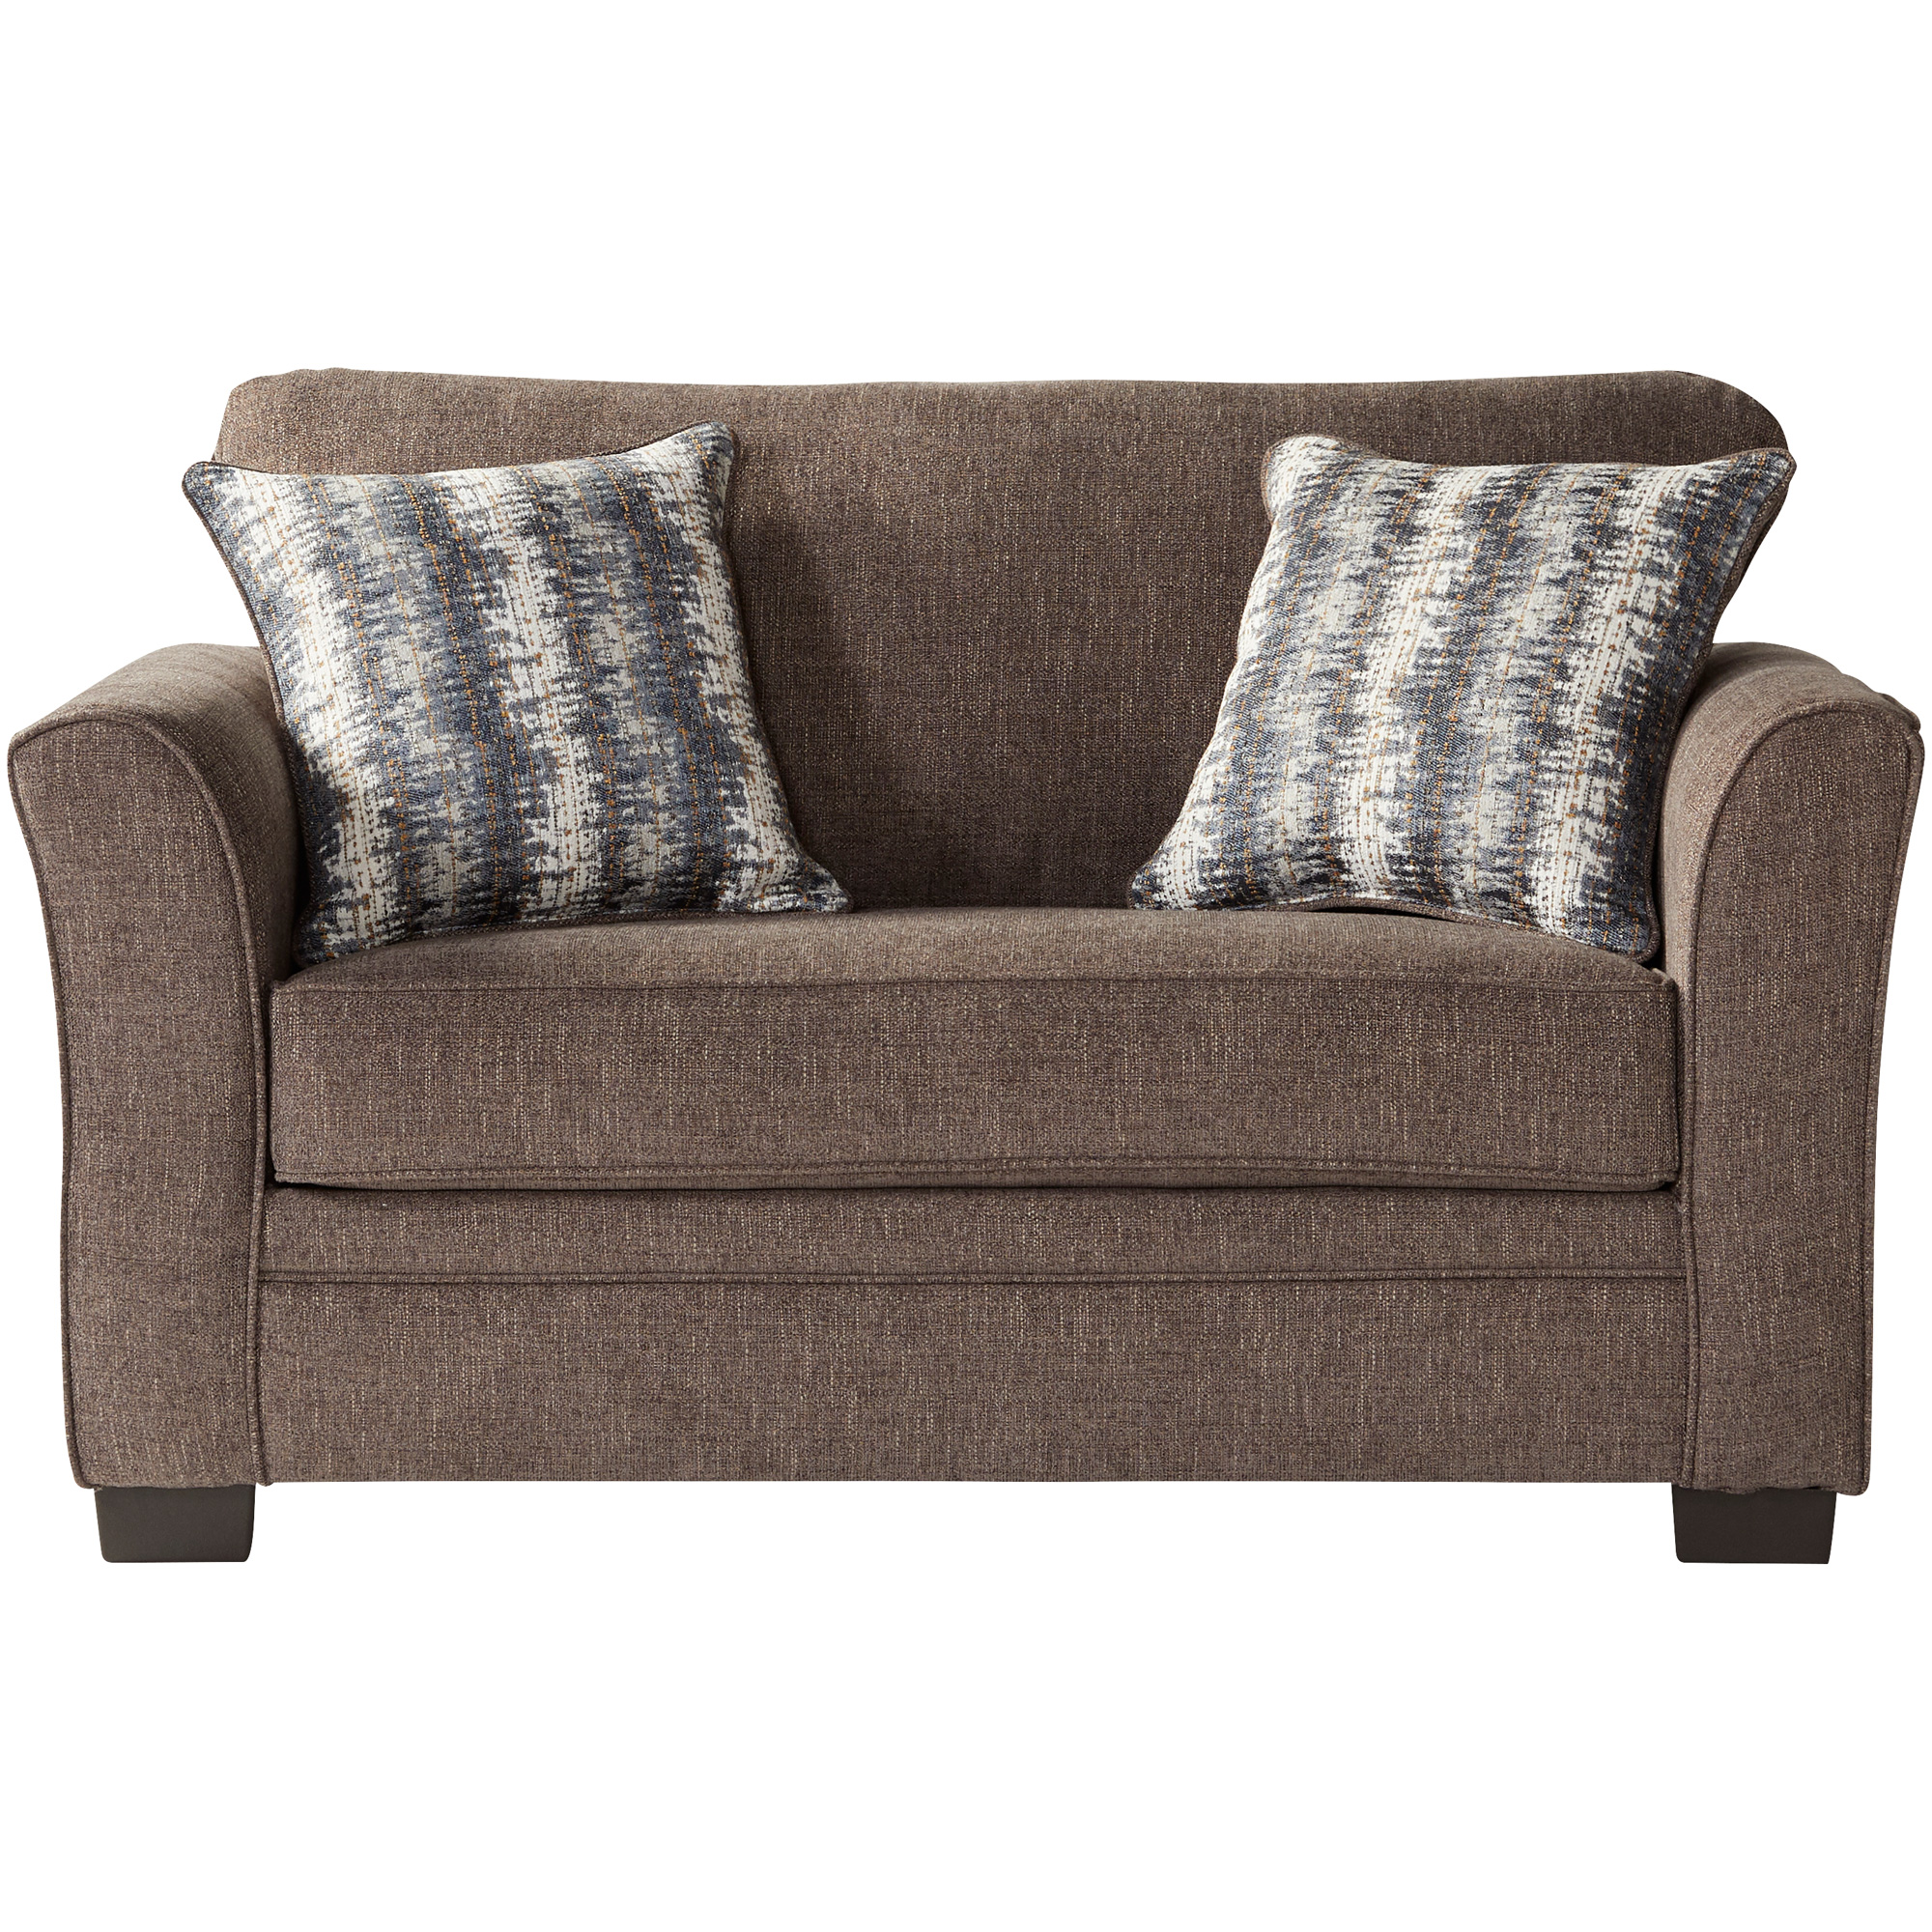 Serta Upholstery By Hughes Furniture | Bolster Umber Twin Sleeper Sofa